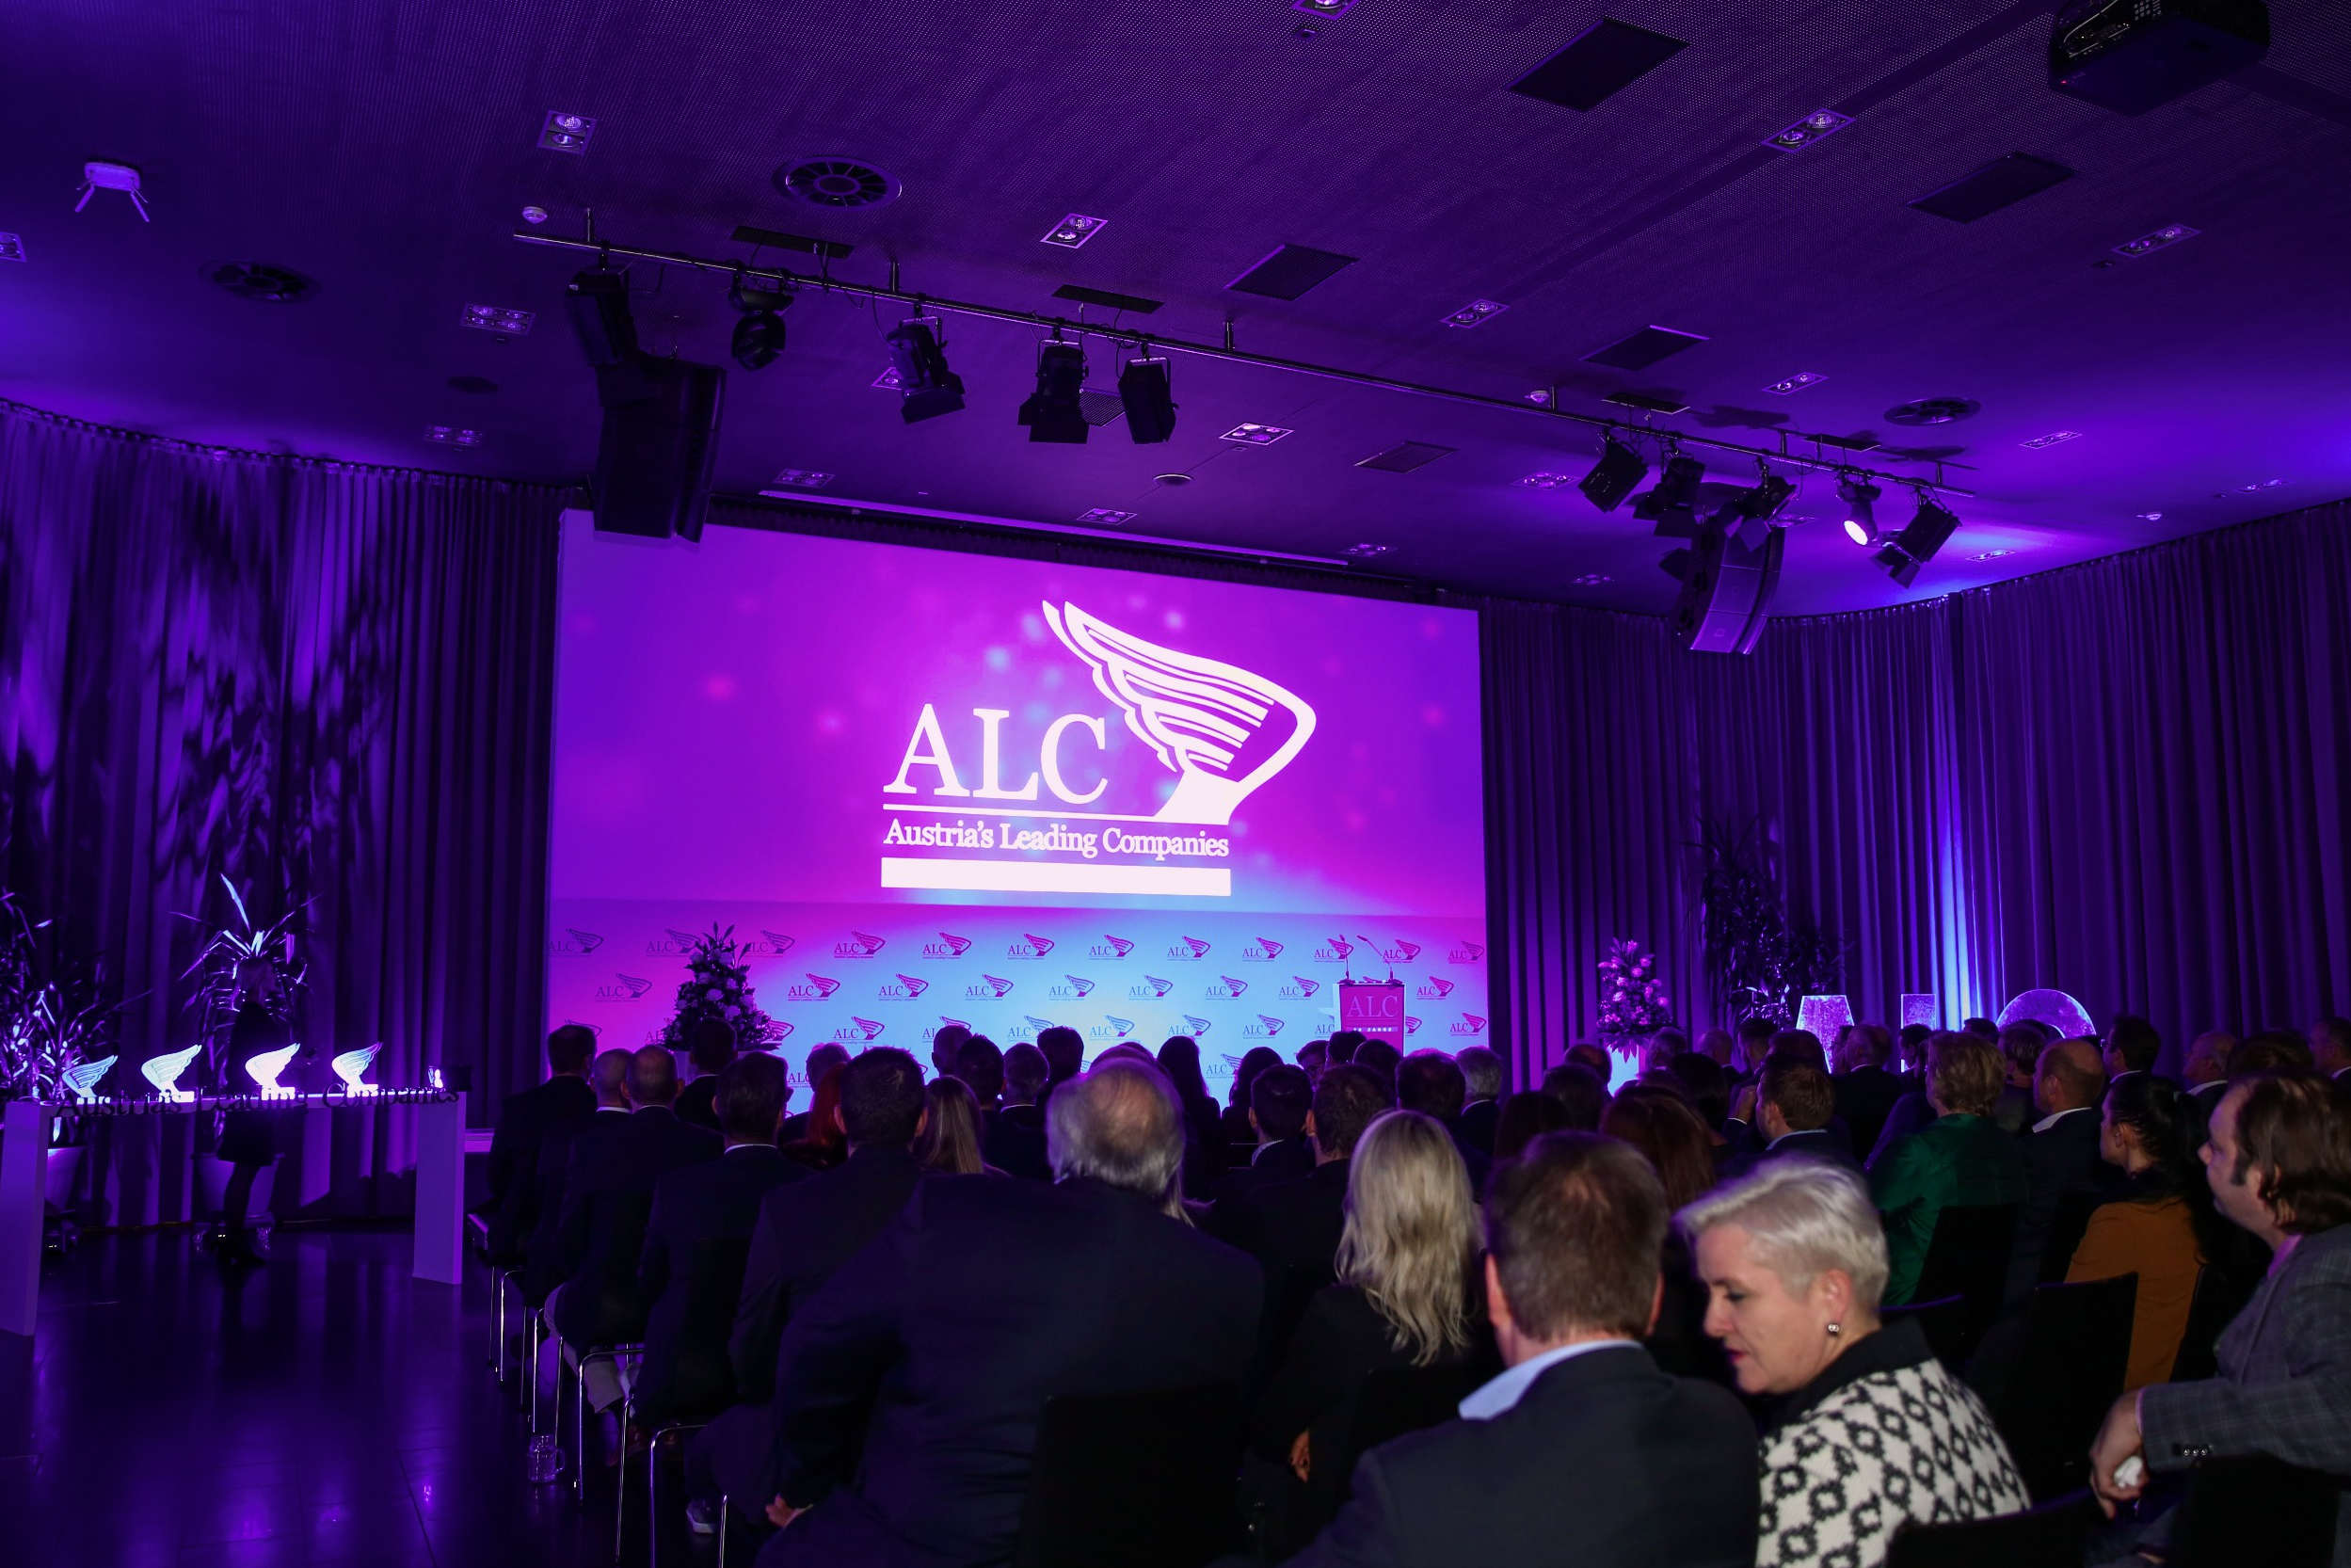 ALC Awards Tour 2018, Event made by KOOP, Roadshow made by KOOP